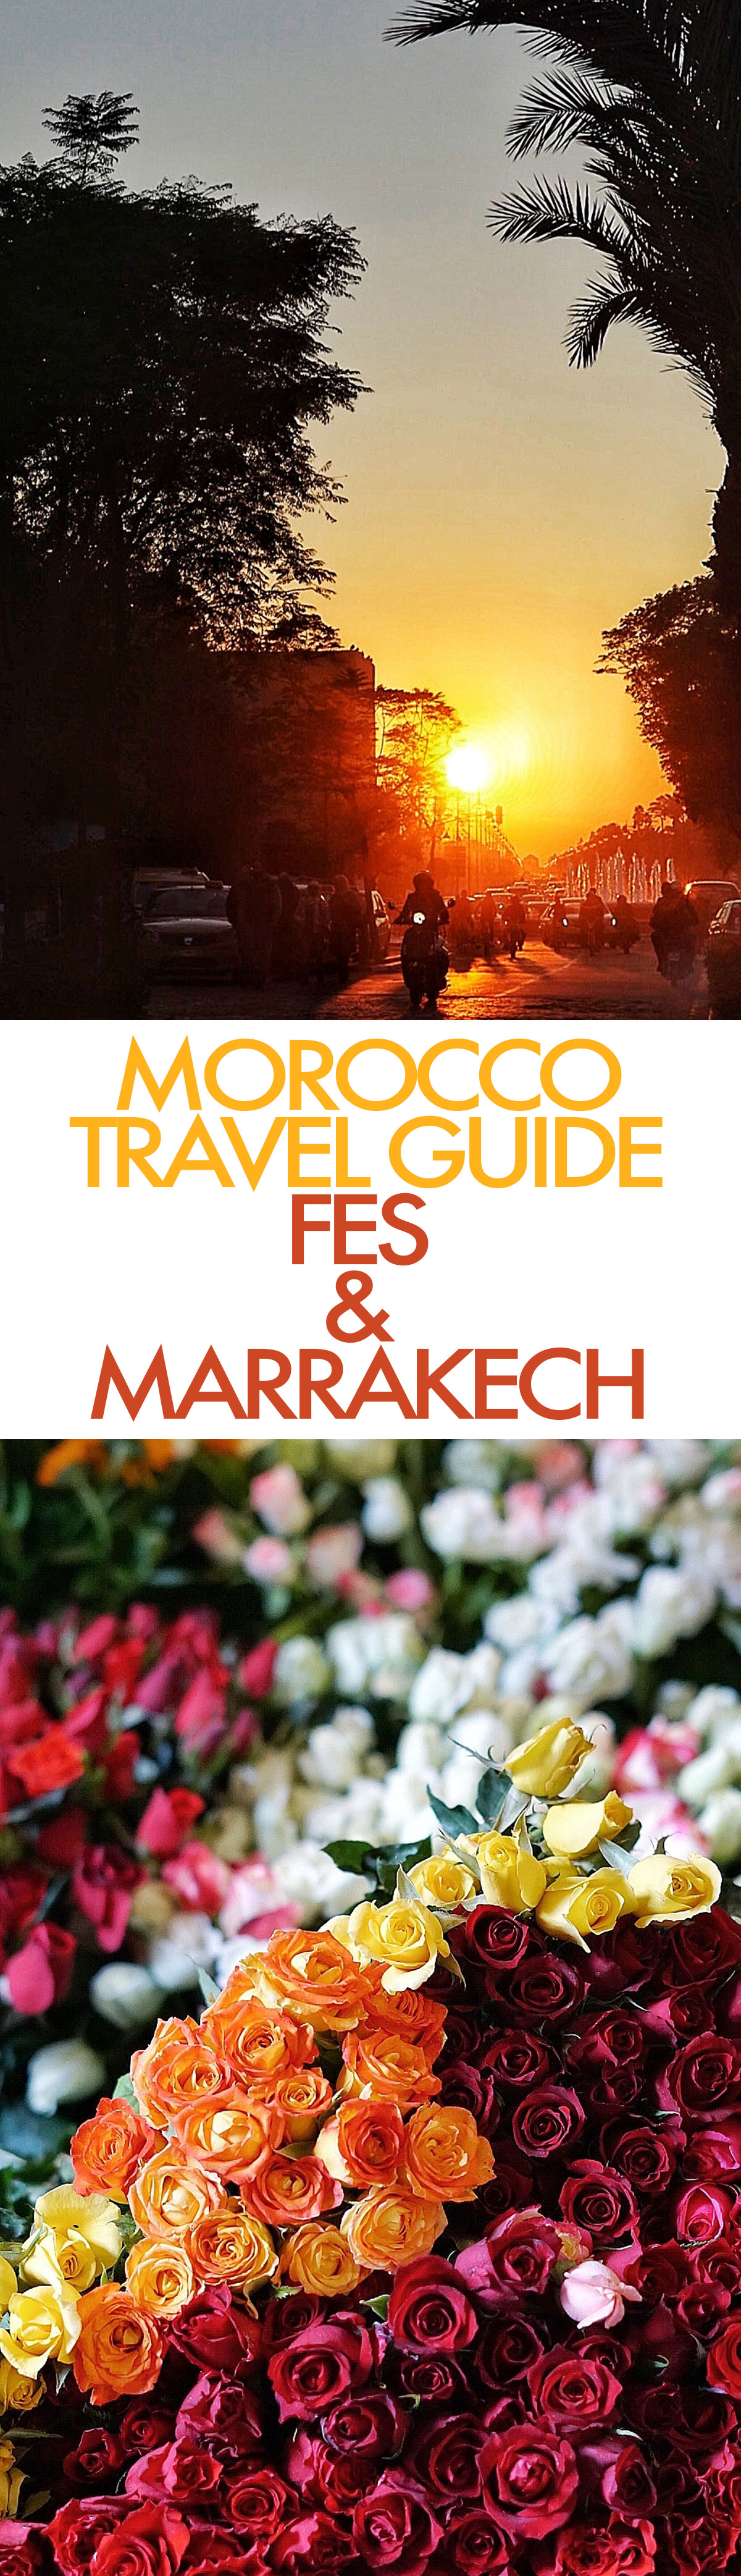 Morocco Guide: Fes & Marrakech